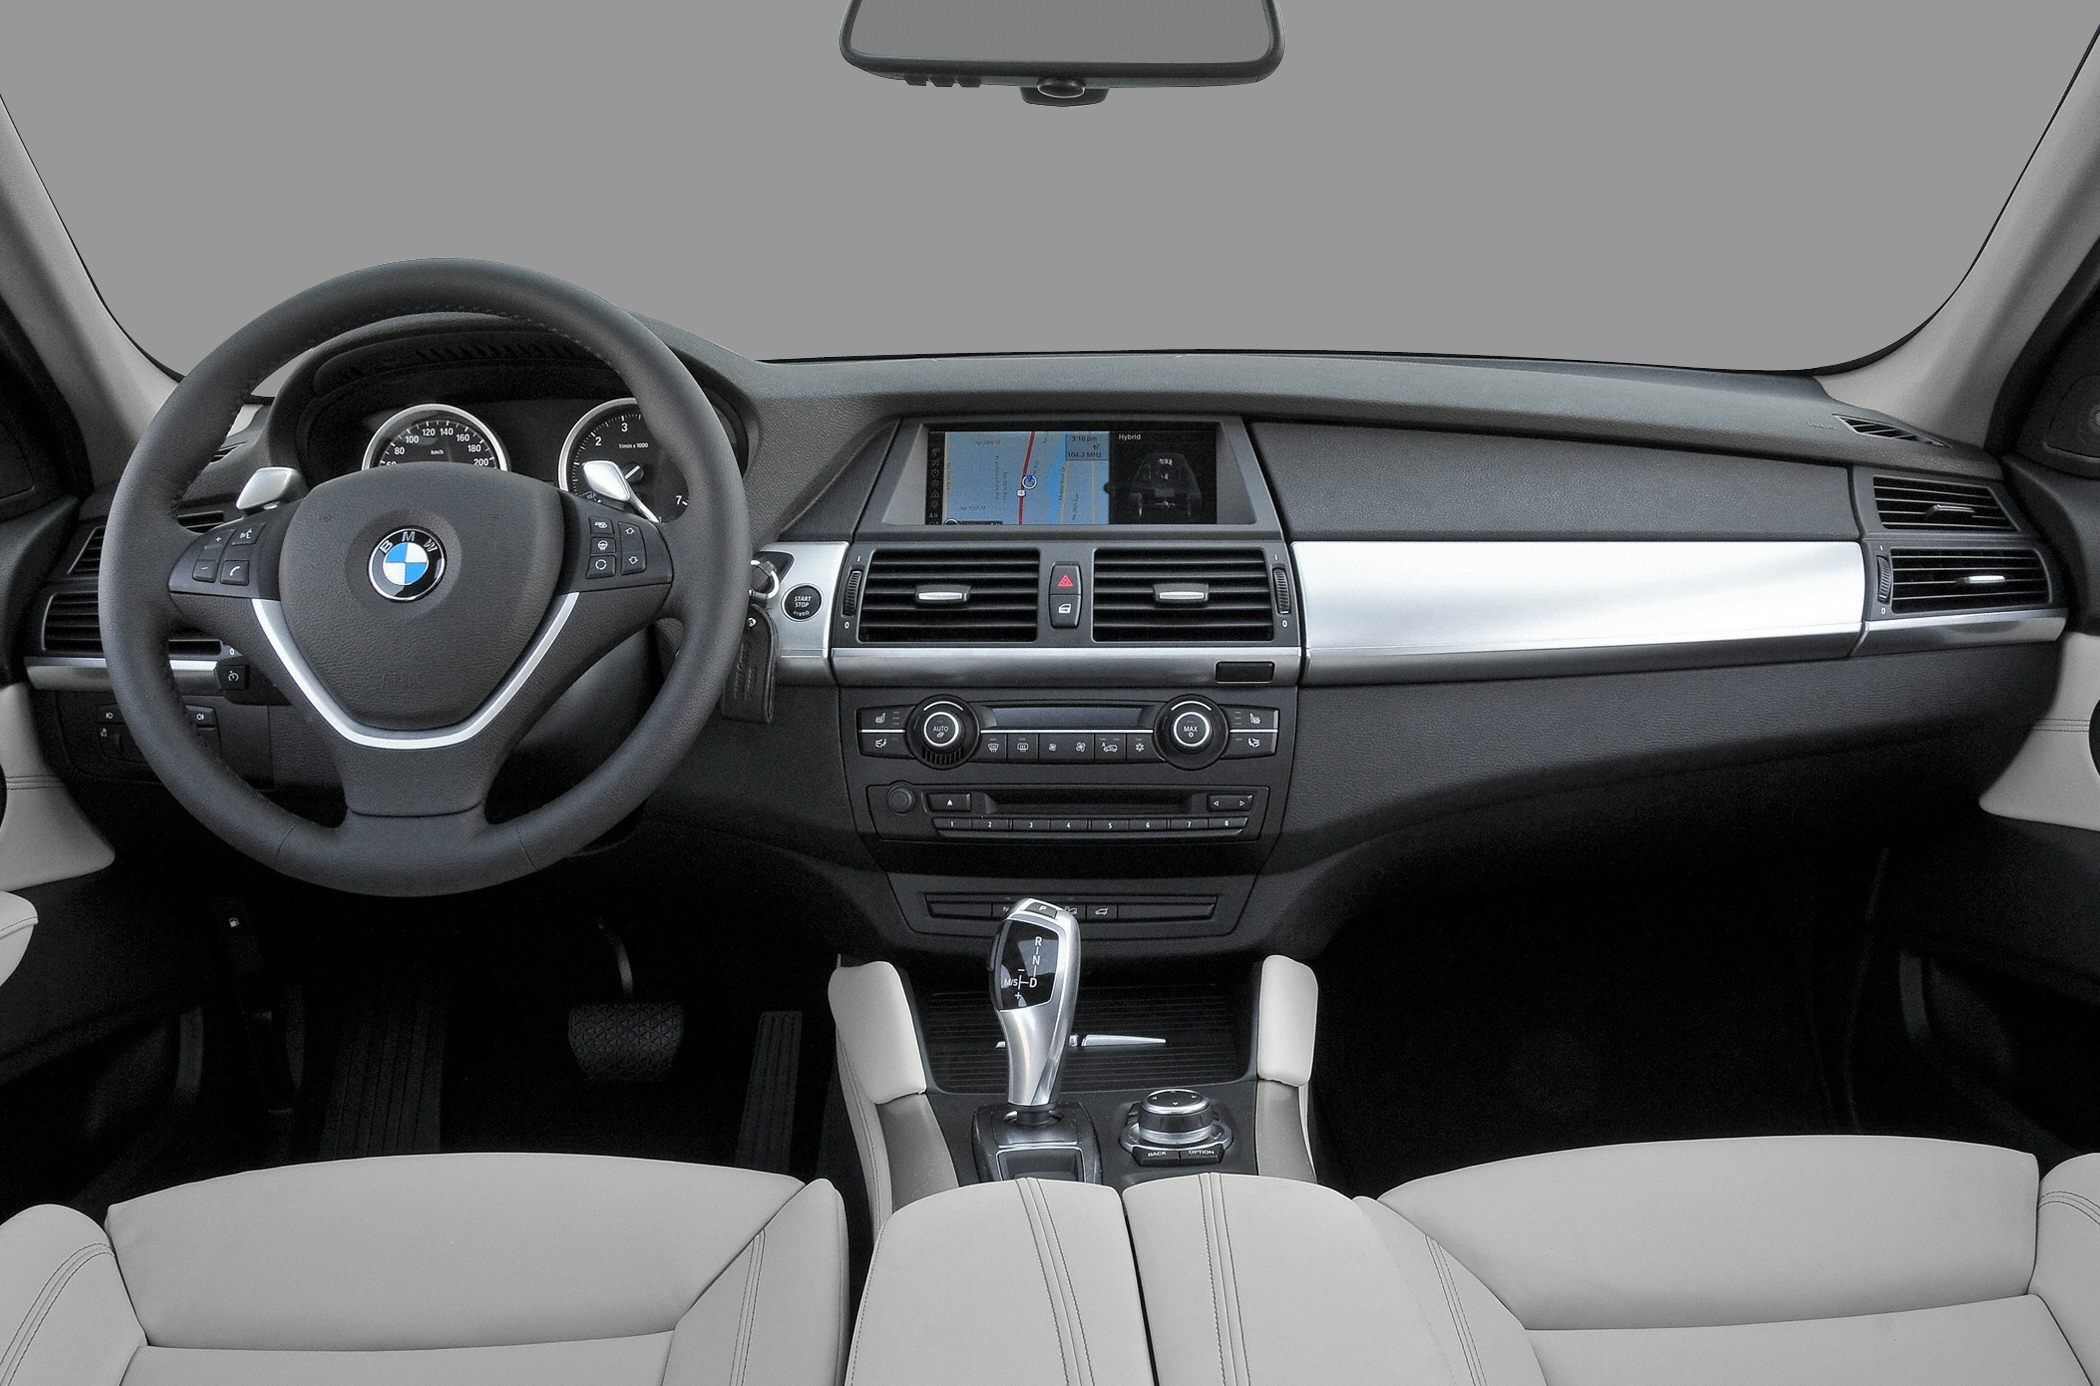 2011-BMW-activehybrid-X6-base-SUV